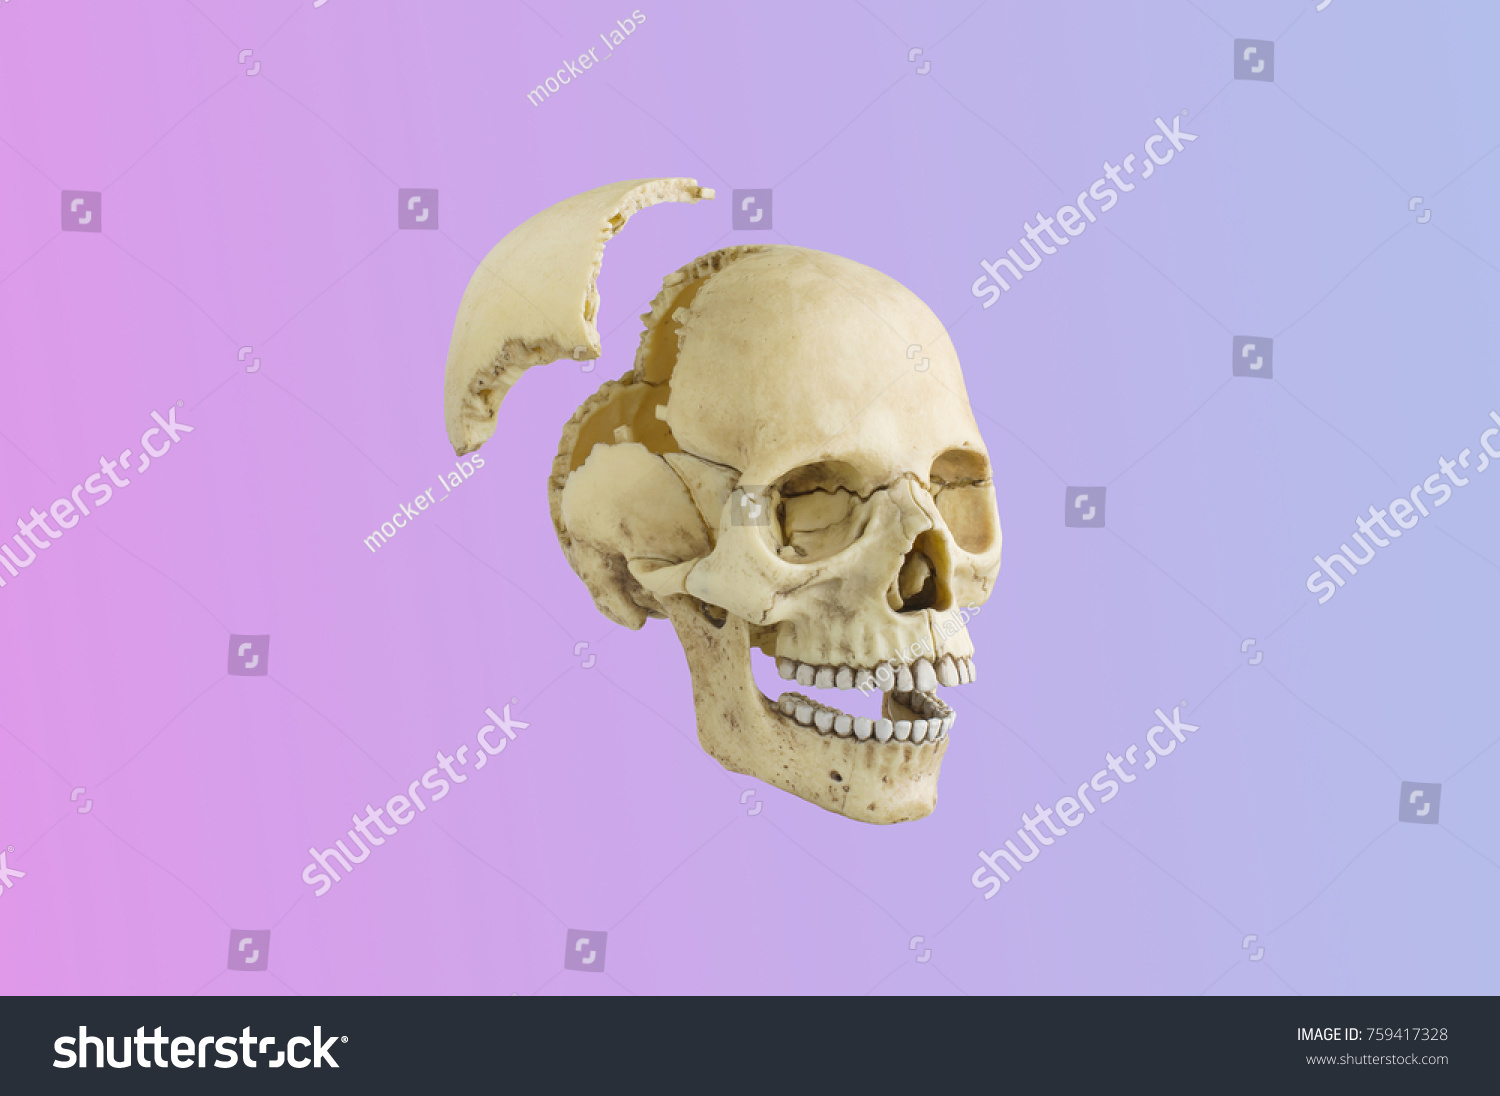 Puzzle Game Skull Stock Photo (Royalty Free) 759417328 - Shutterstock